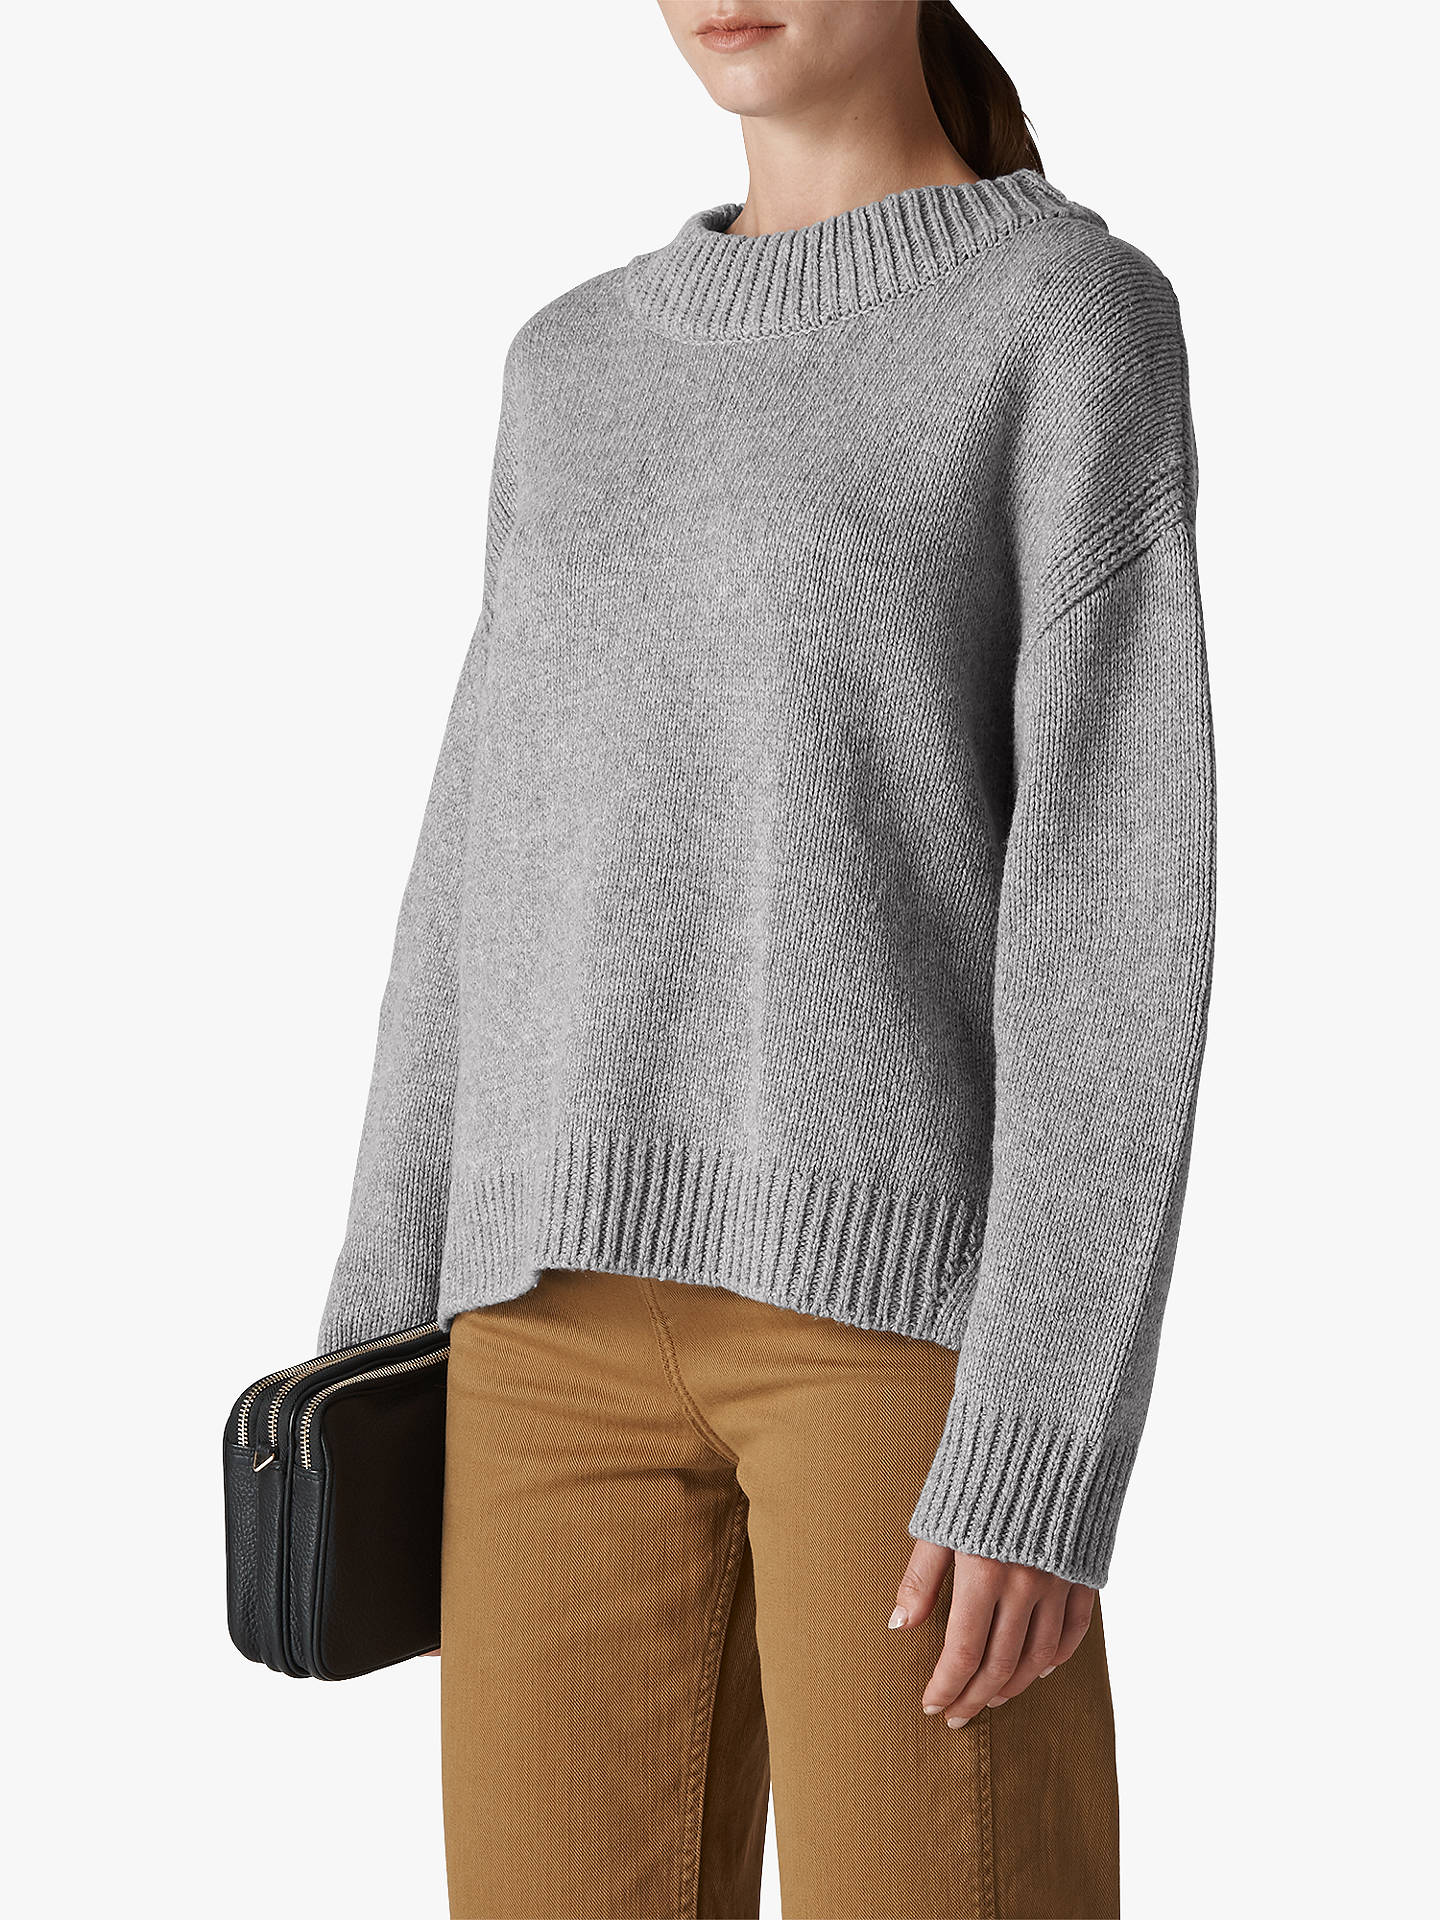 ca87aa5496 Whistles Chunky Knit Oversized Cropped Jumper at John Lewis   Partners